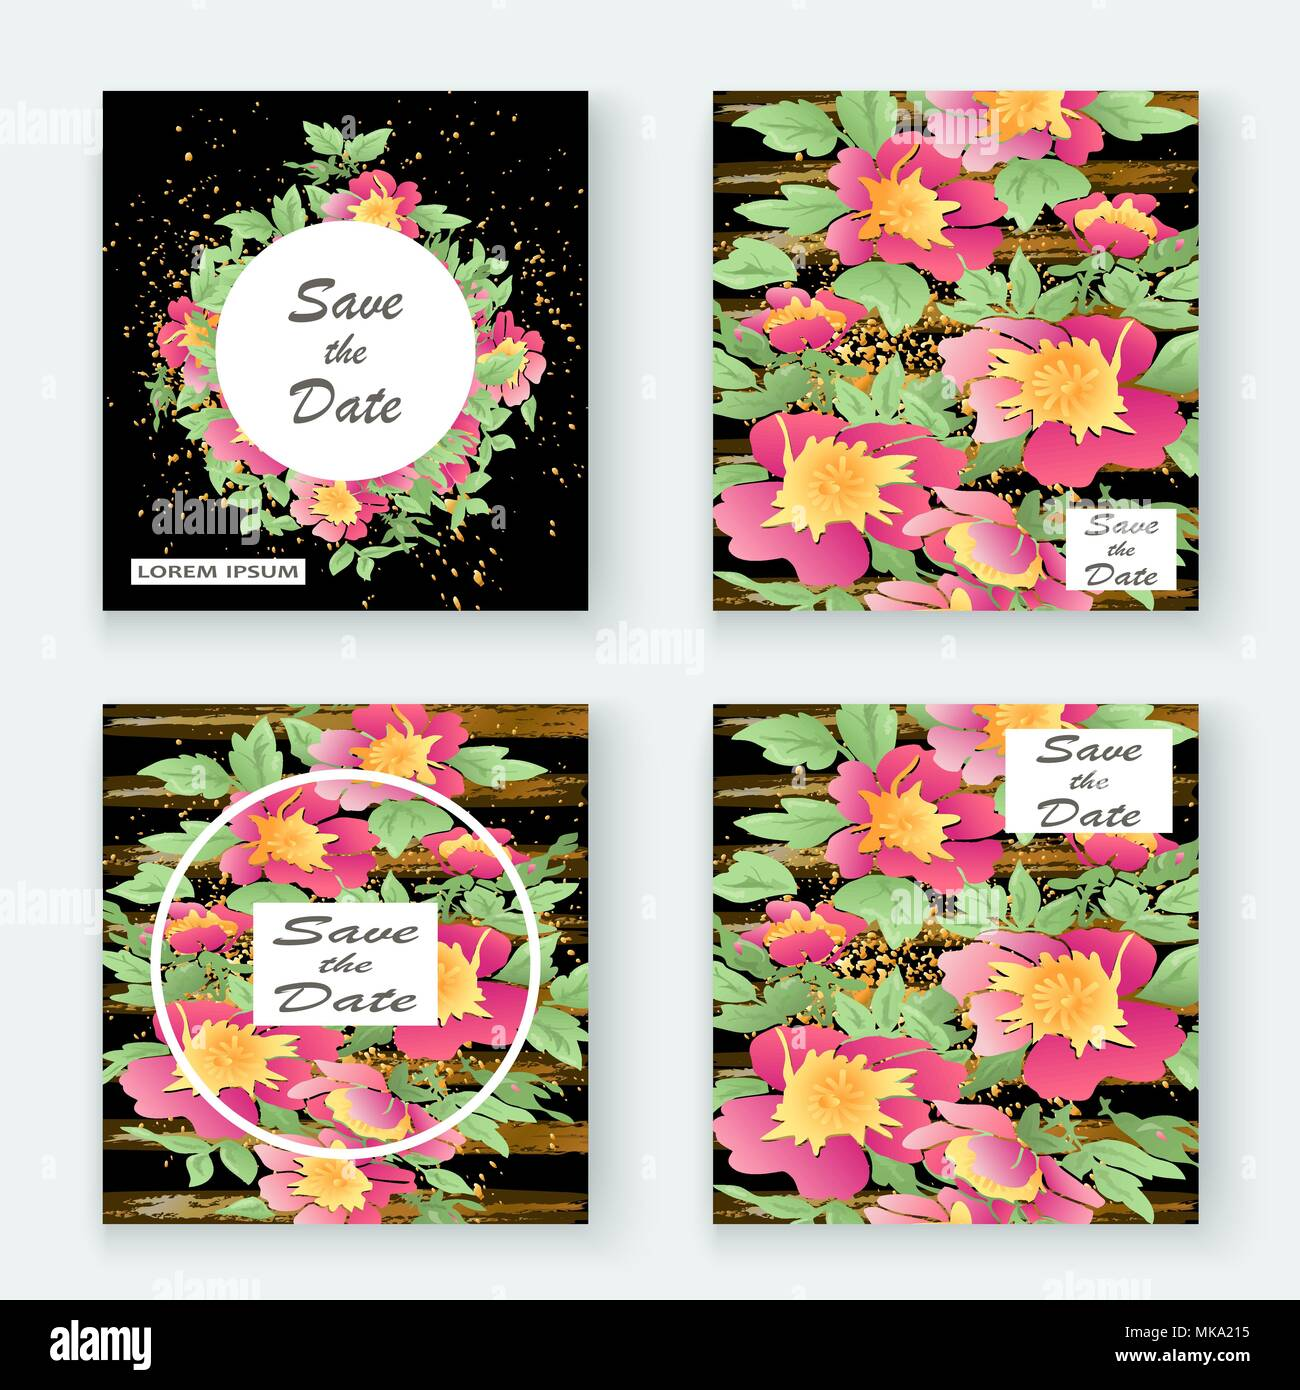 Greeting Cards With Flower Rose Wreath Leaves With Gold Lines Black